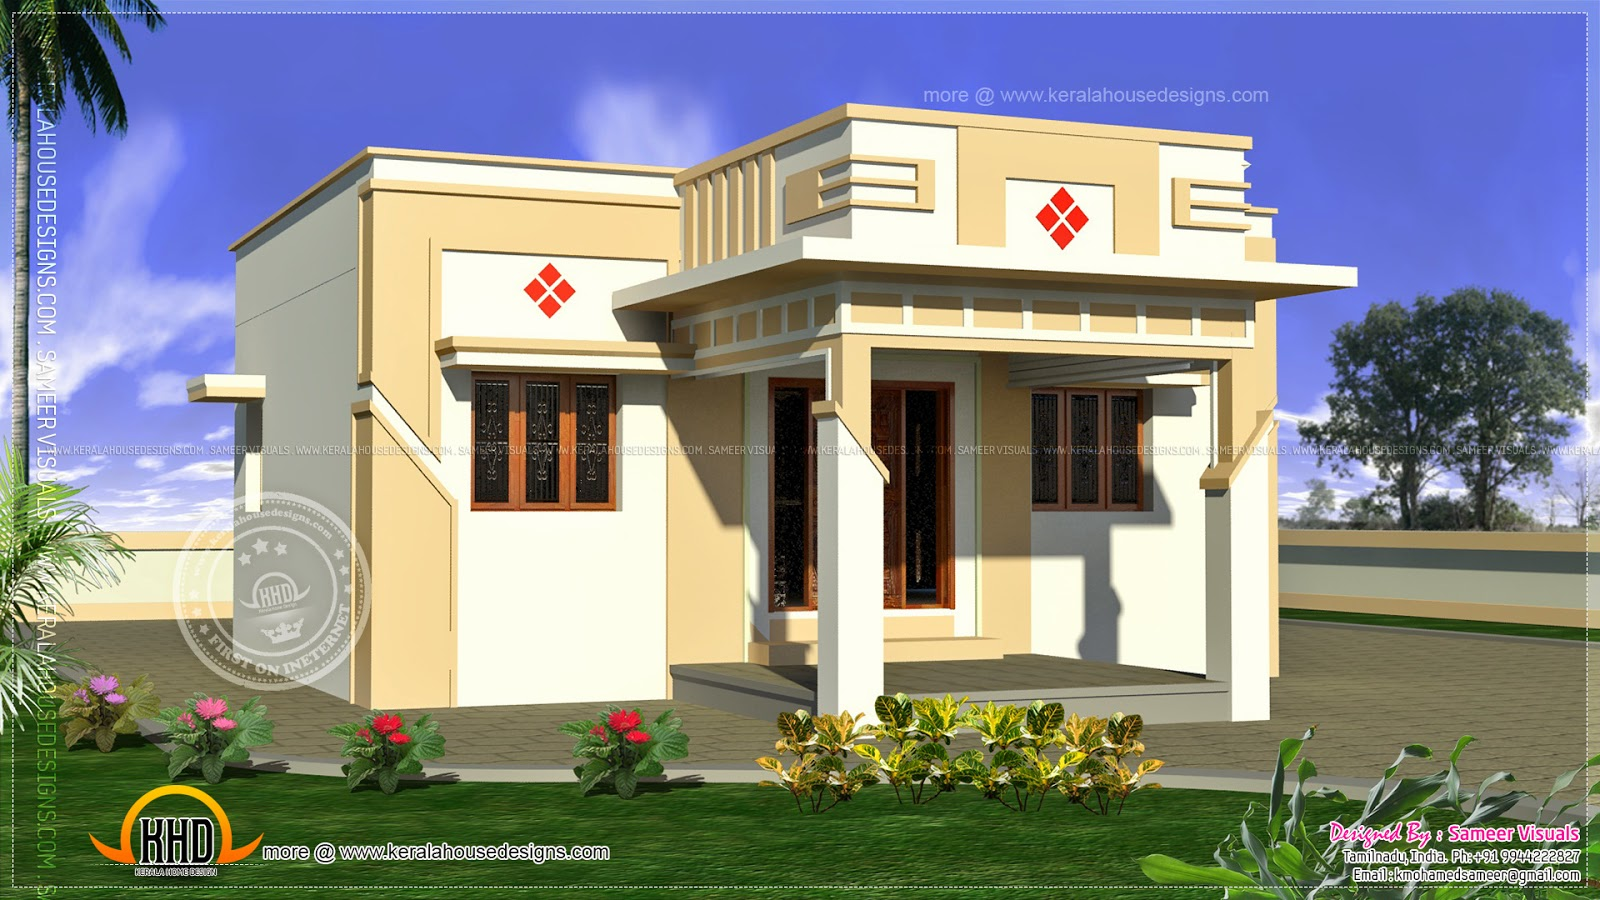 Low cost tamilnadu house kerala home design and floor plans for House plans for 1200 sq ft in tamilnadu